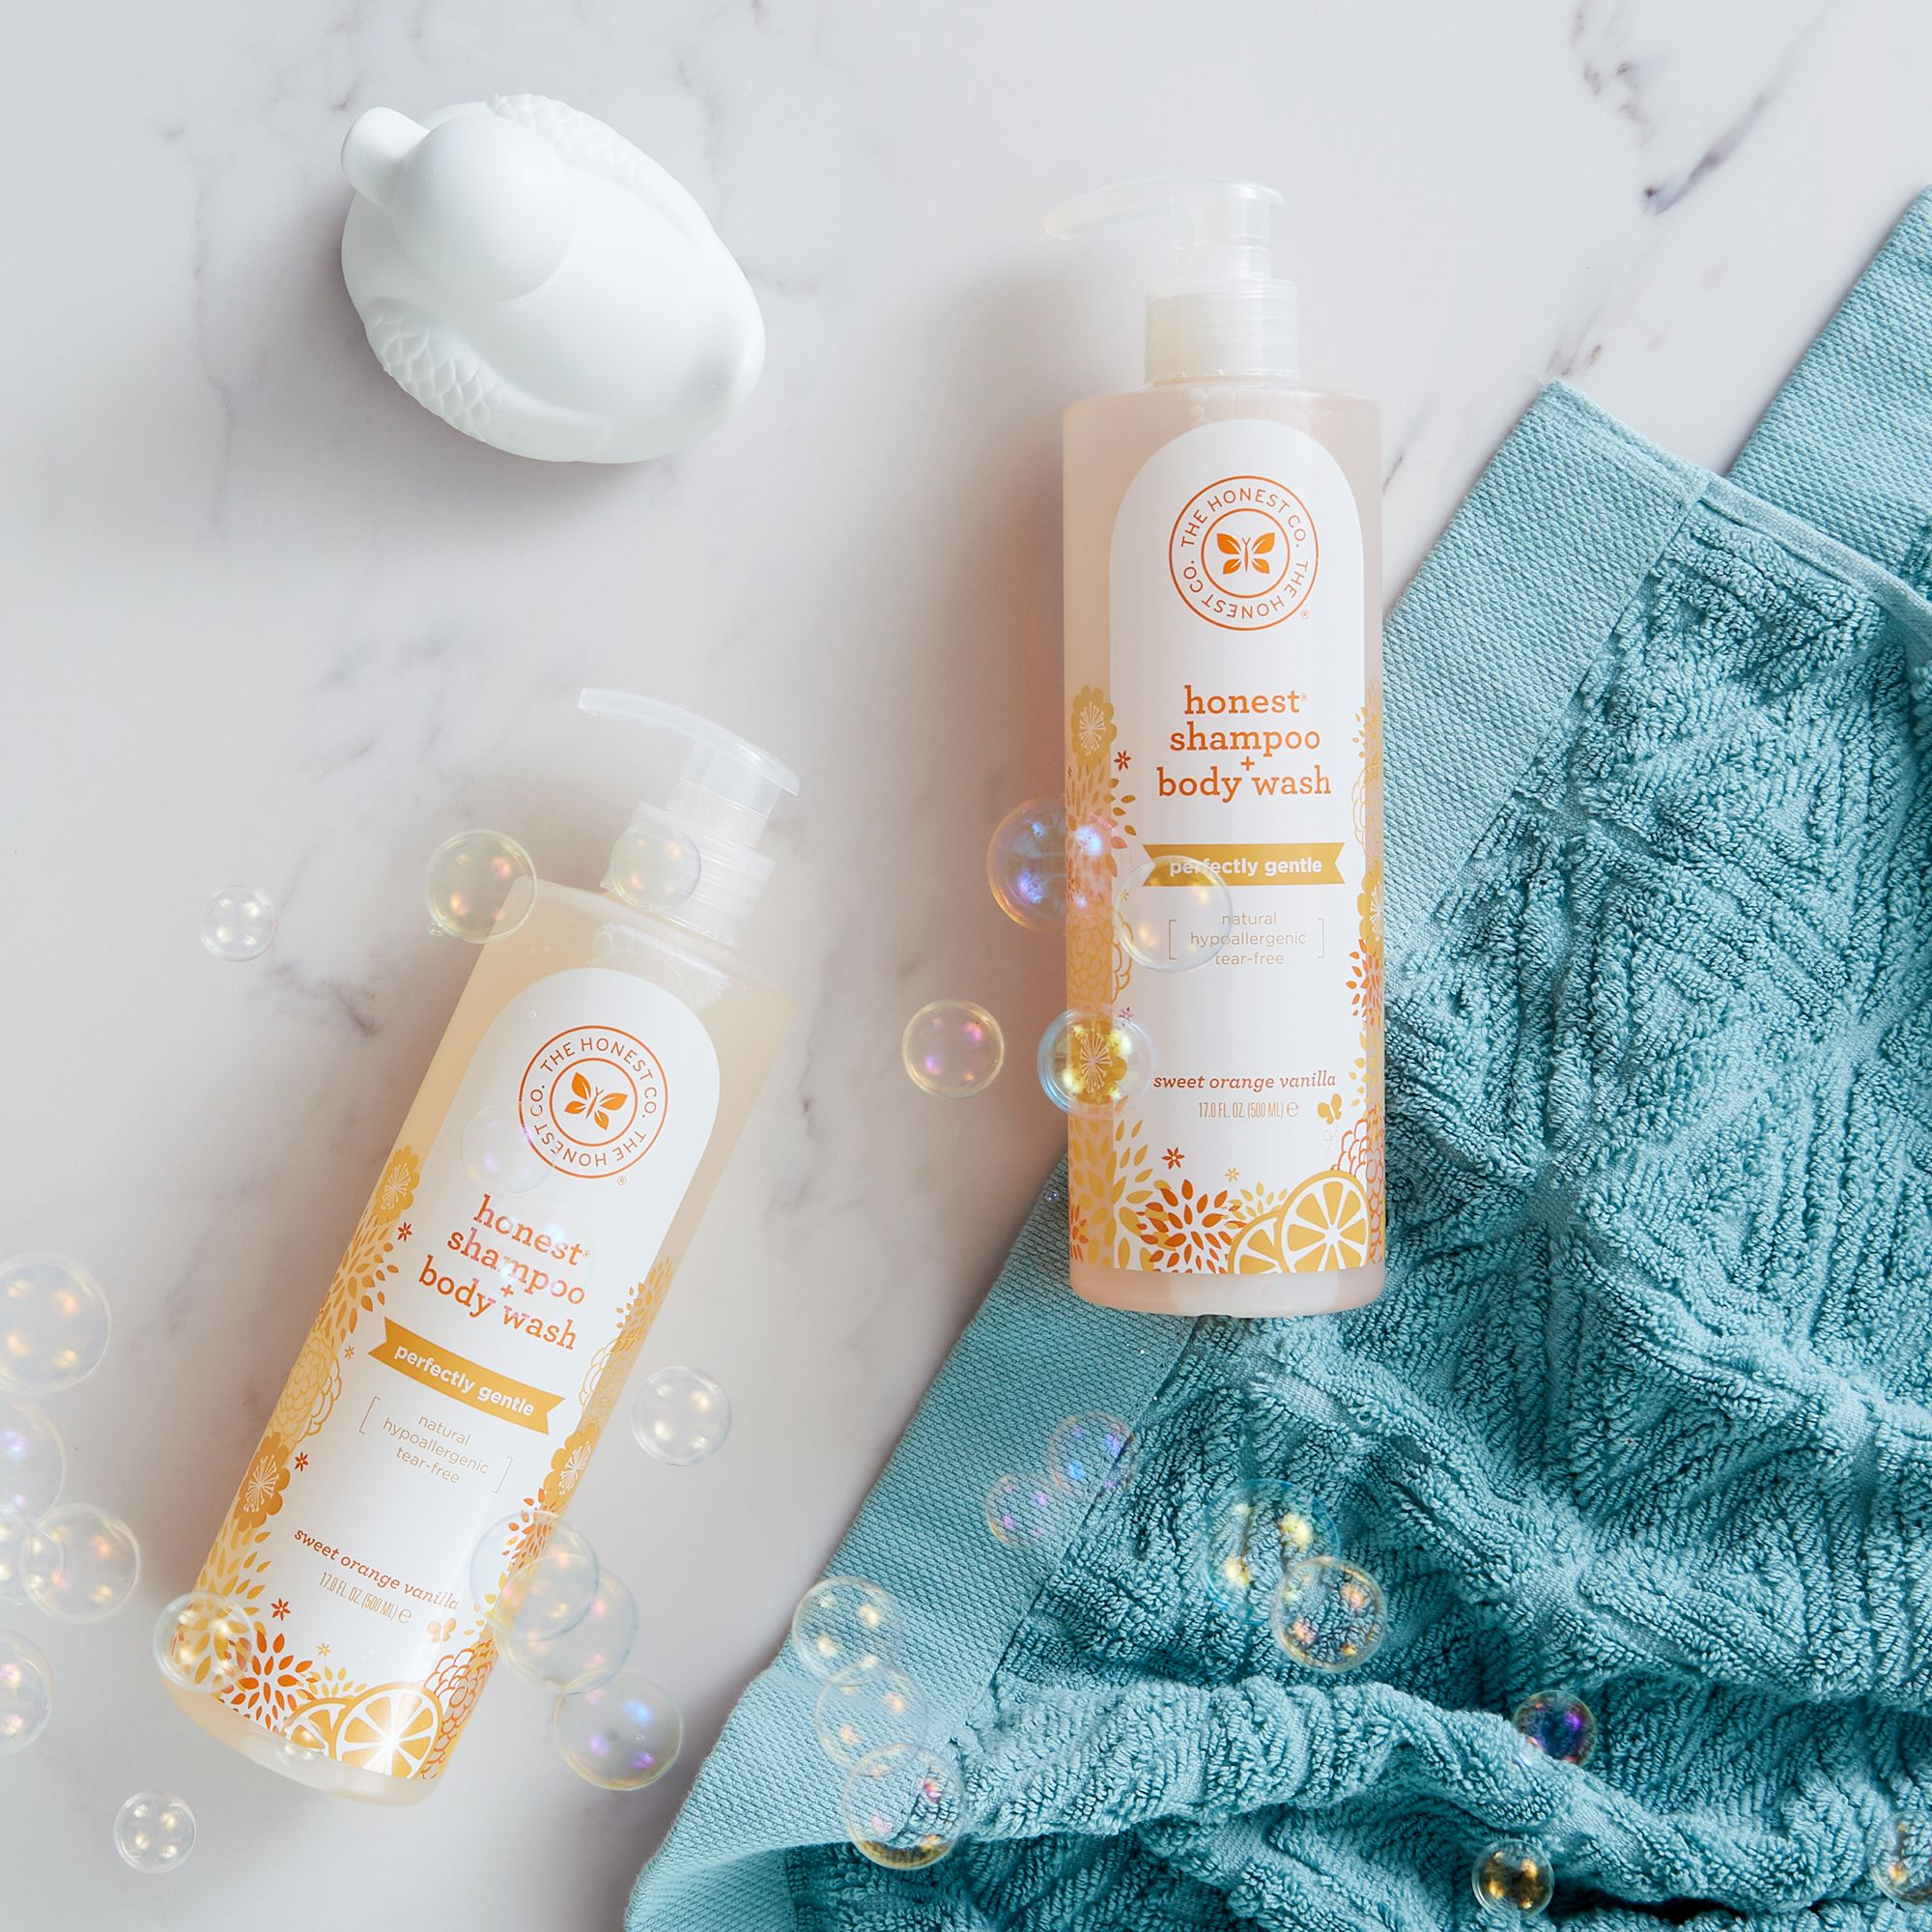 82bfed84def The Honest Company Shampoo and Body Wash. Our gentle and mild 2-in-1  cleanser is designed to cleanse the entire body from head to toe.